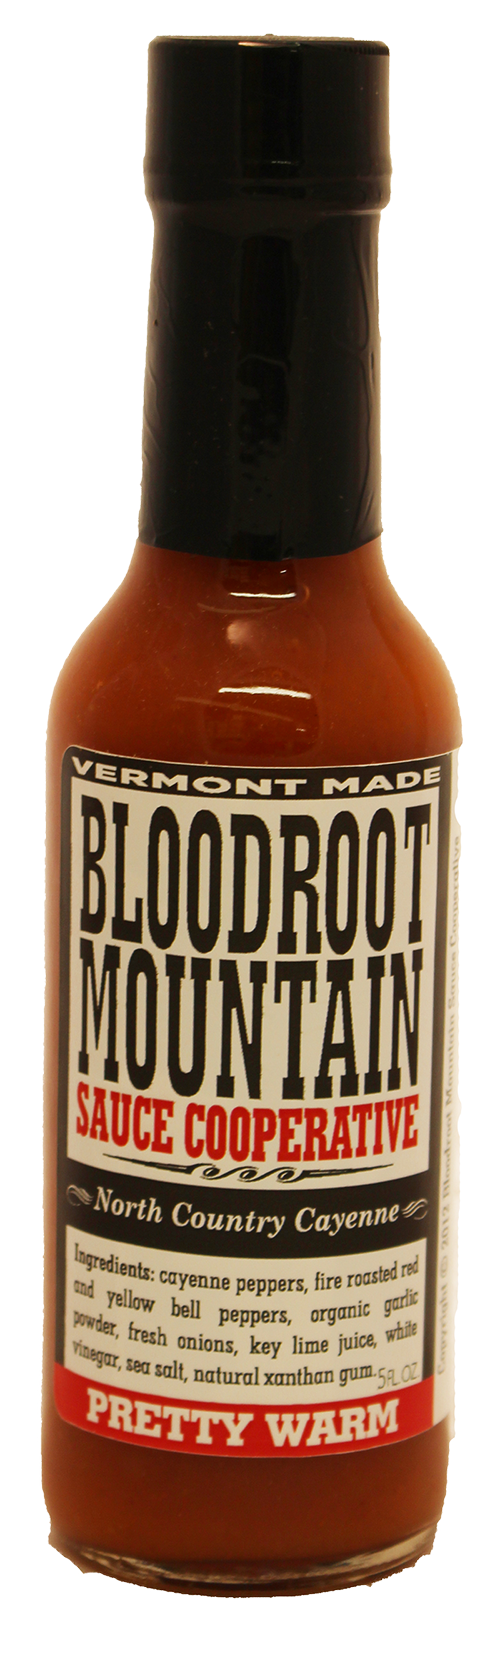 Bloodroot Mountain North Country Cayenne Hot Sauce